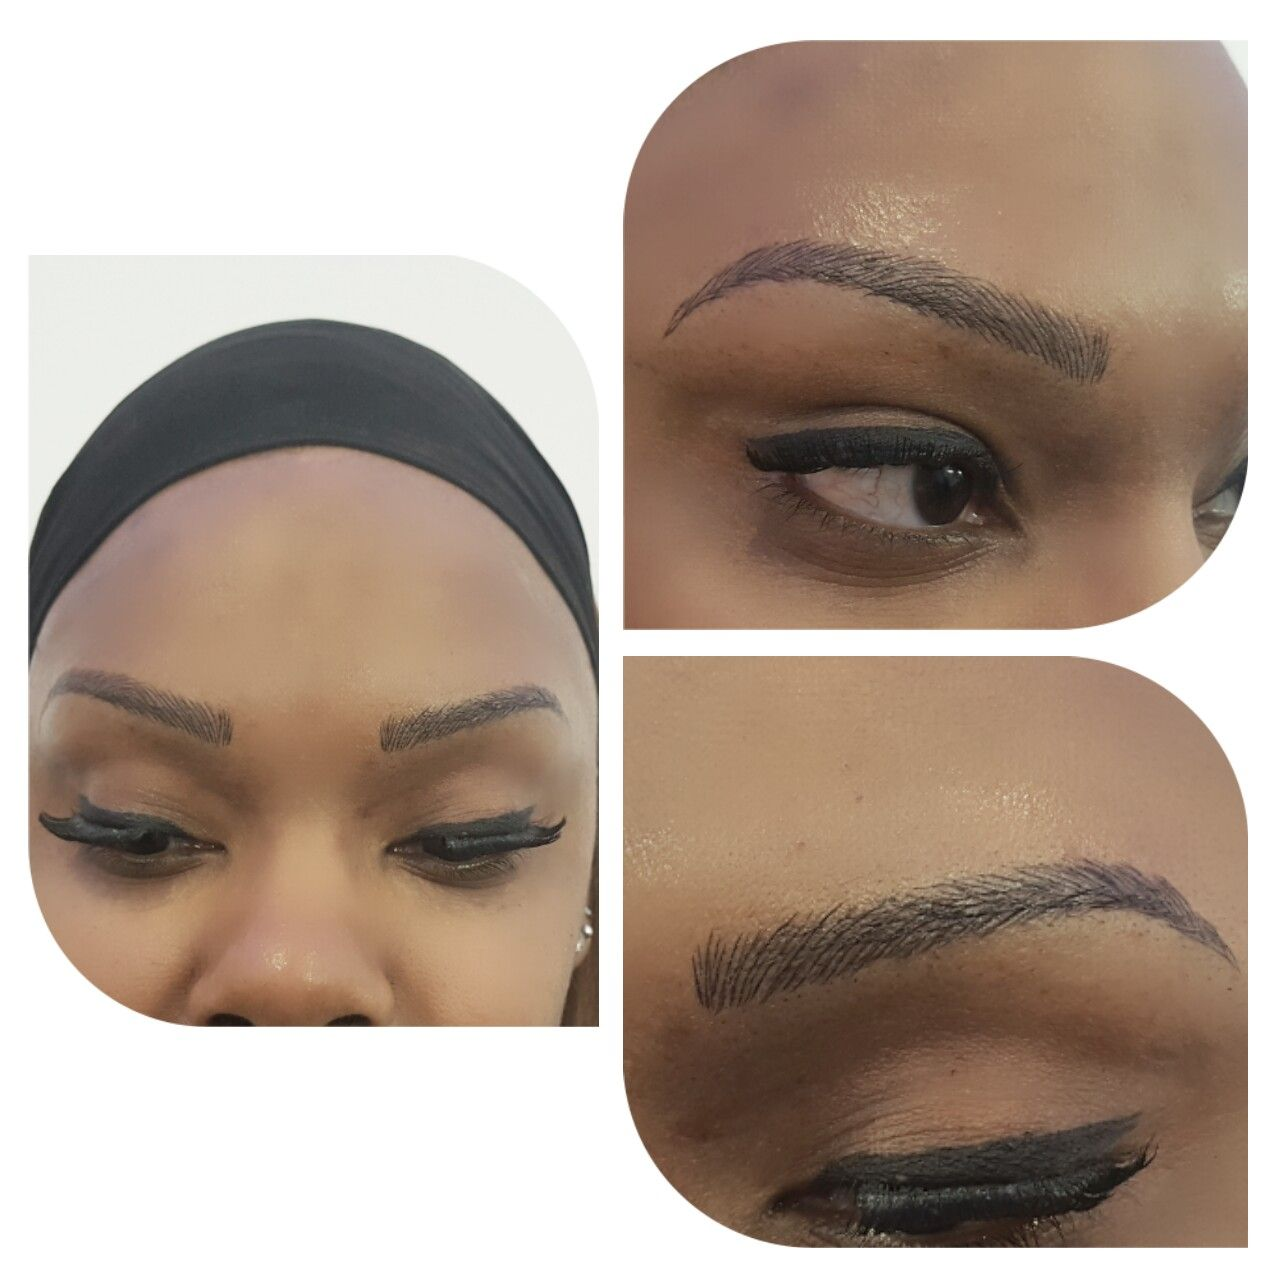 We have a special for Microblading 150initial set